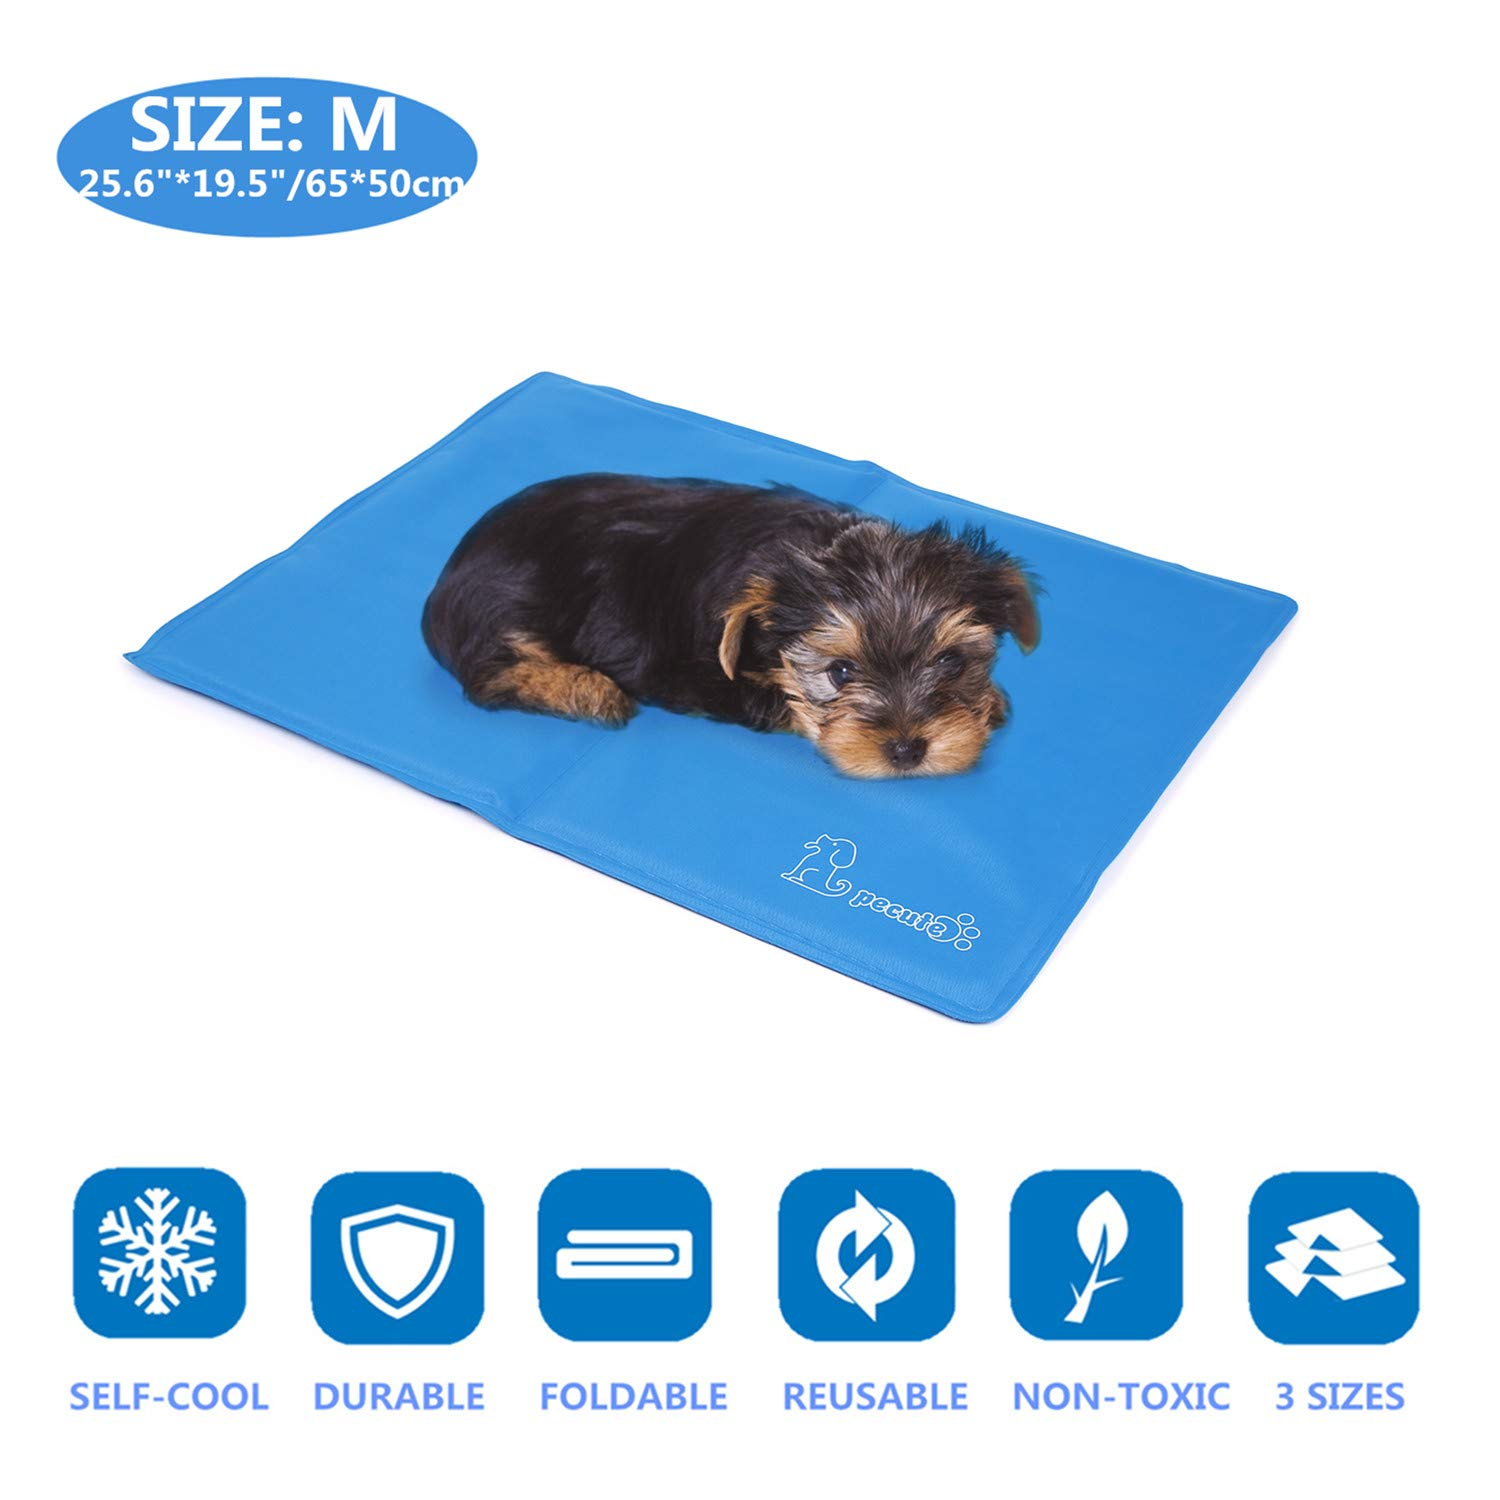 Pecute Dog Cooling Mat Medium 65x50cm, Durable Pet Cool Mat Non-Toxic Gel Self Cooling Pad, Great for Dogs Cats in Hot Summer